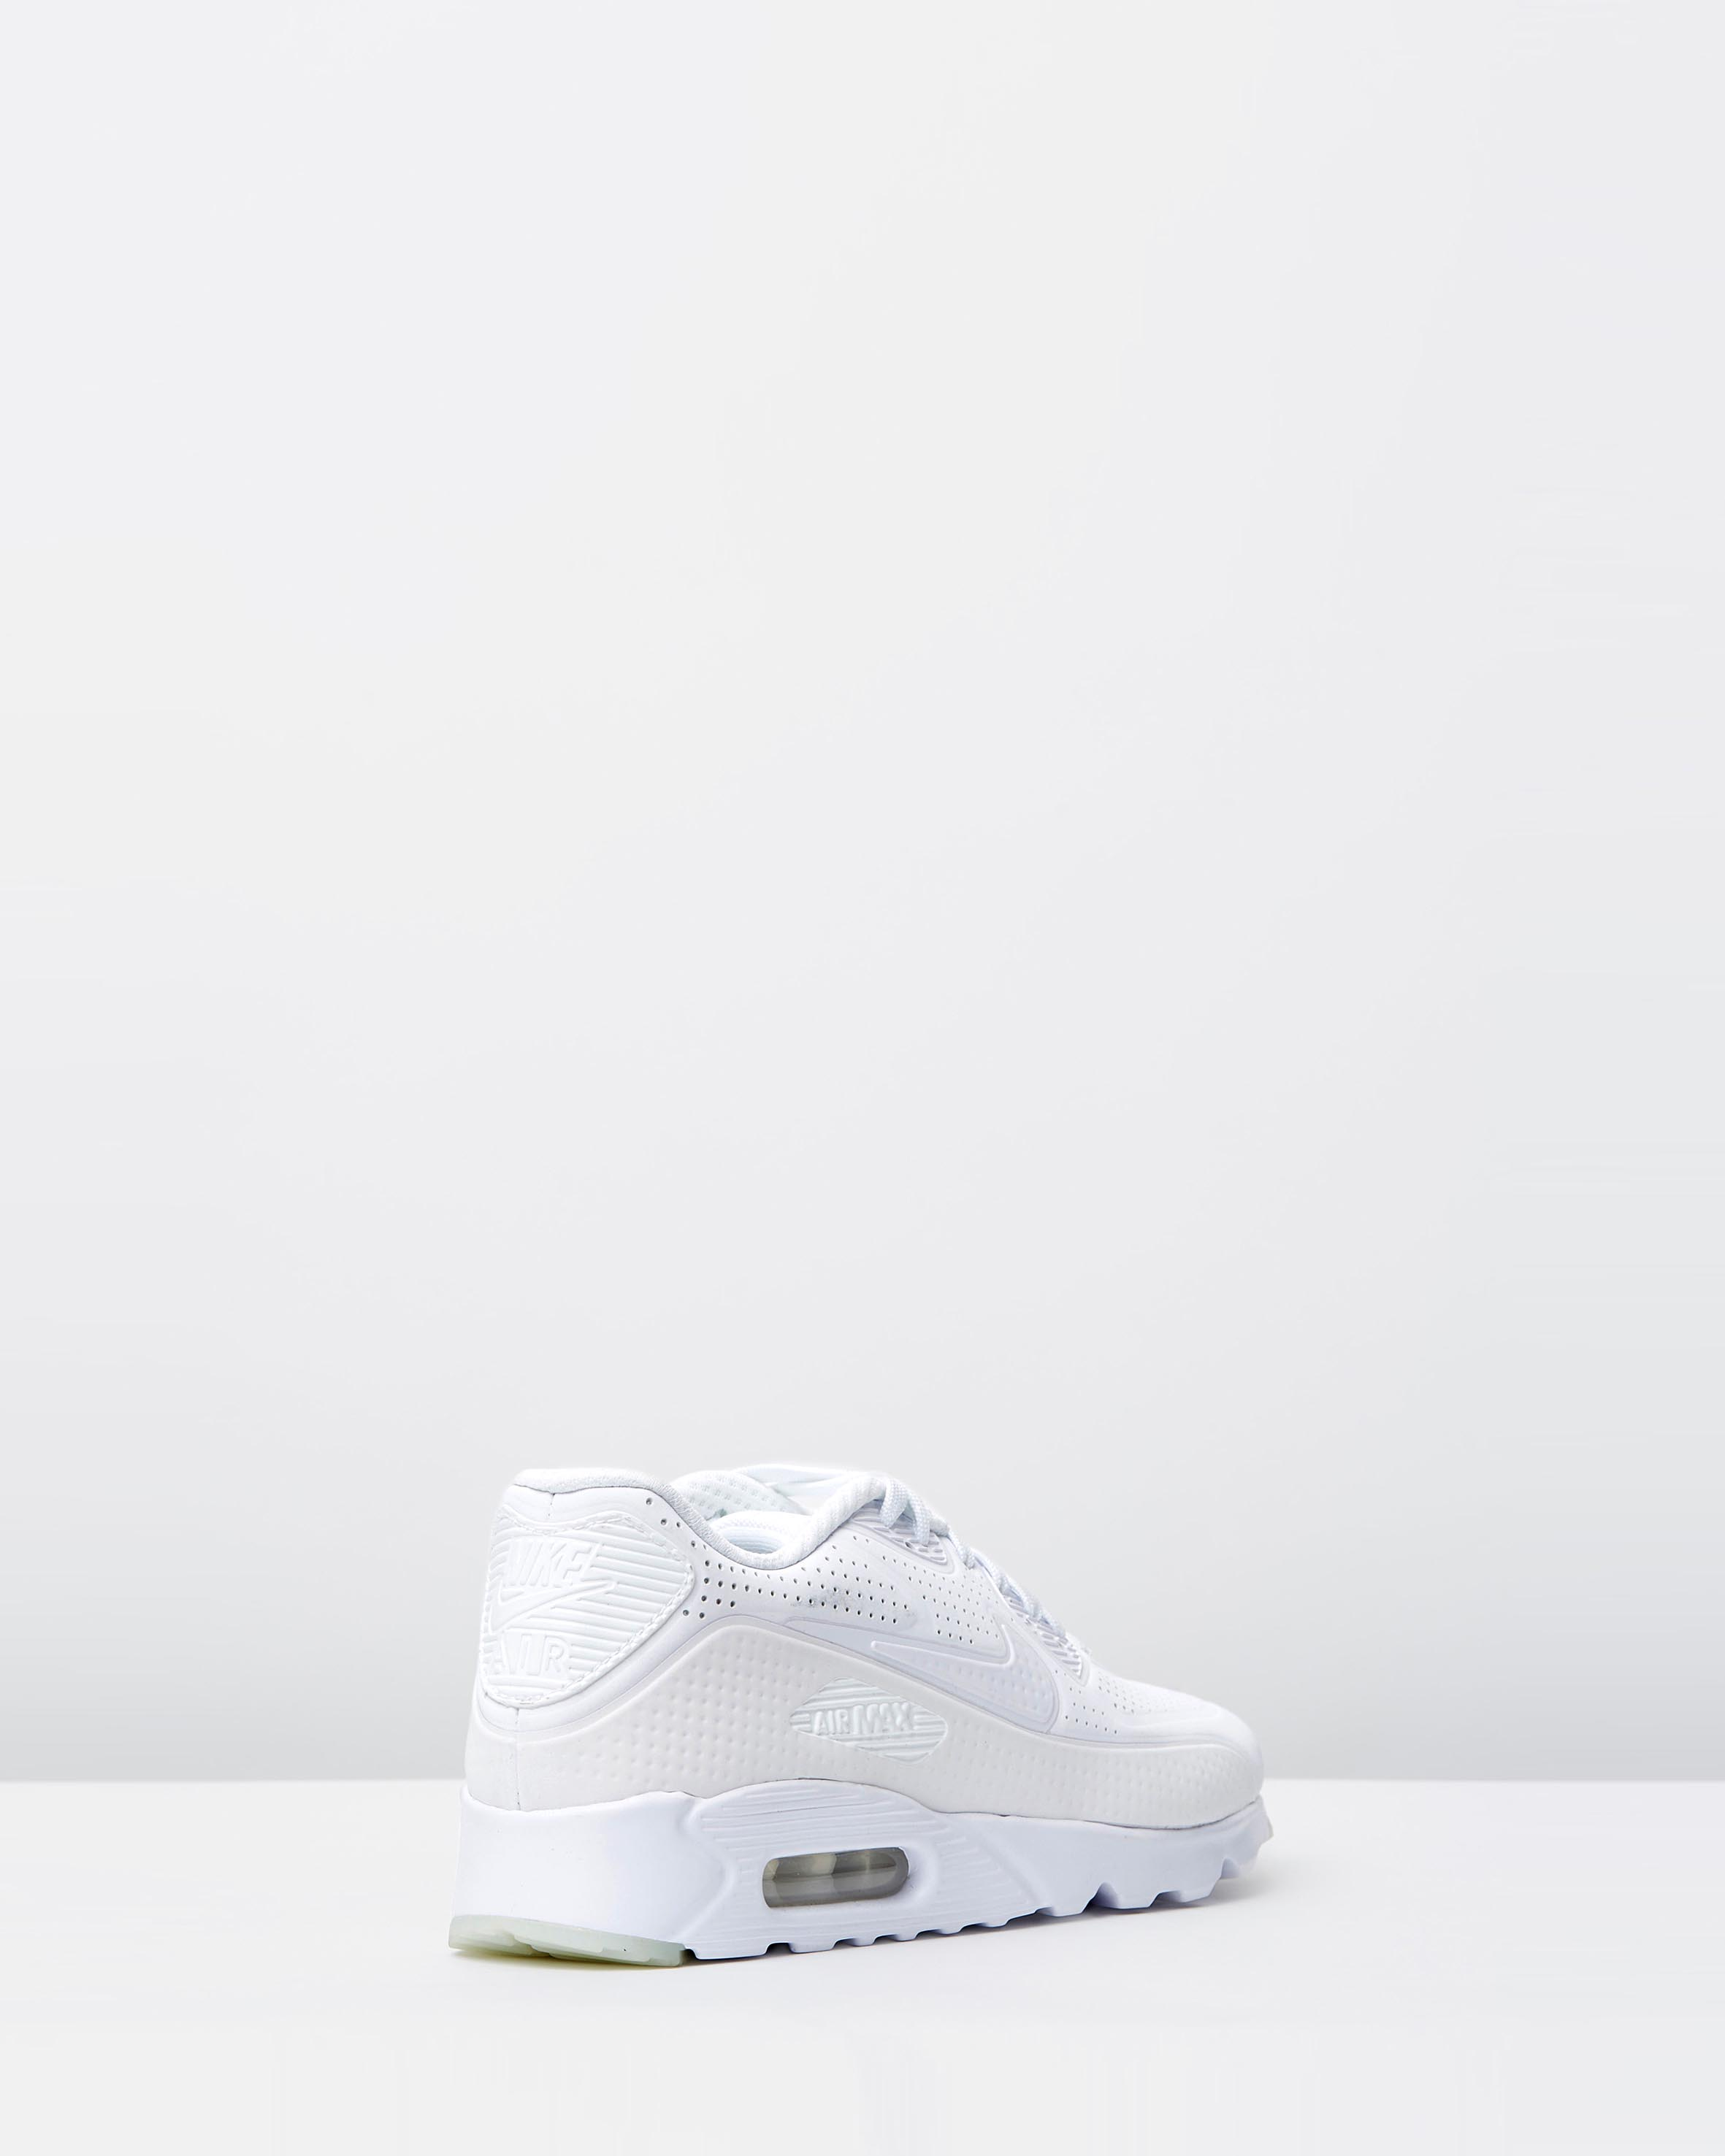 nike air max 90 ultra moire white sneaker store. Black Bedroom Furniture Sets. Home Design Ideas